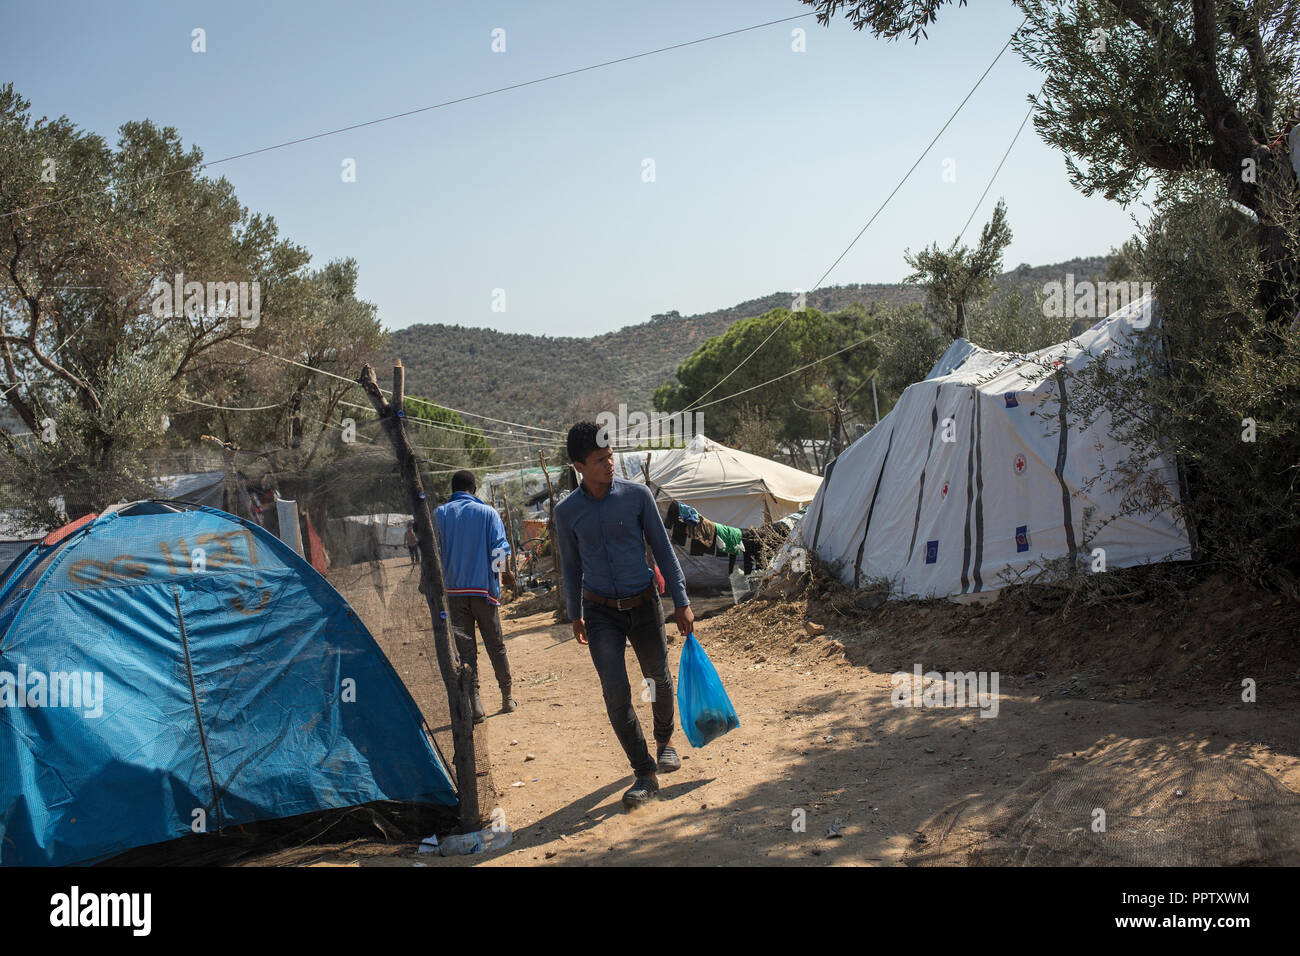 Moira, Greece. 24th Sep, 2018. A man walks between the tents in a temporary camp next to the refugee camp Moria. Credit: Socrates Baltagiannis/dpa/Alamy Live News - Stock Image